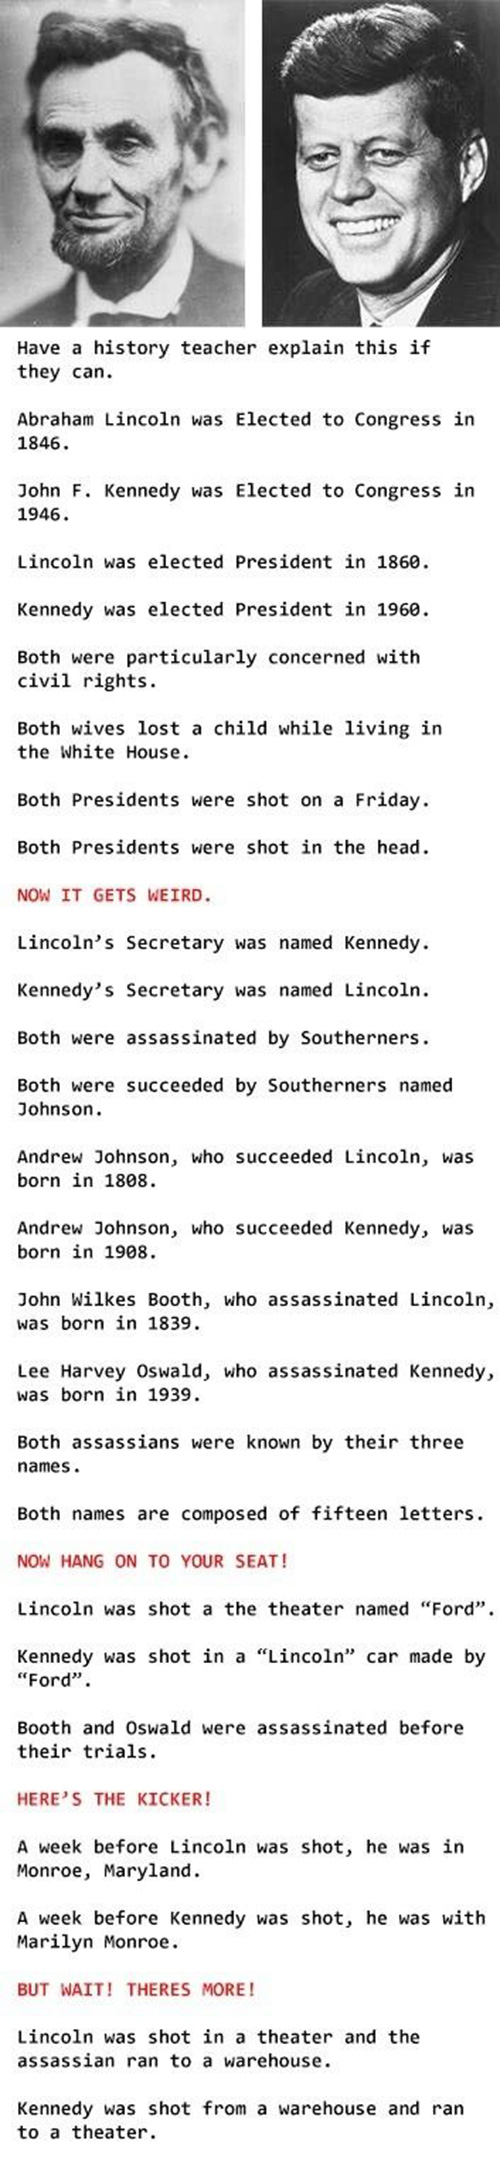 A comparison between the assassinations of john f kennedy and abraham lincoln